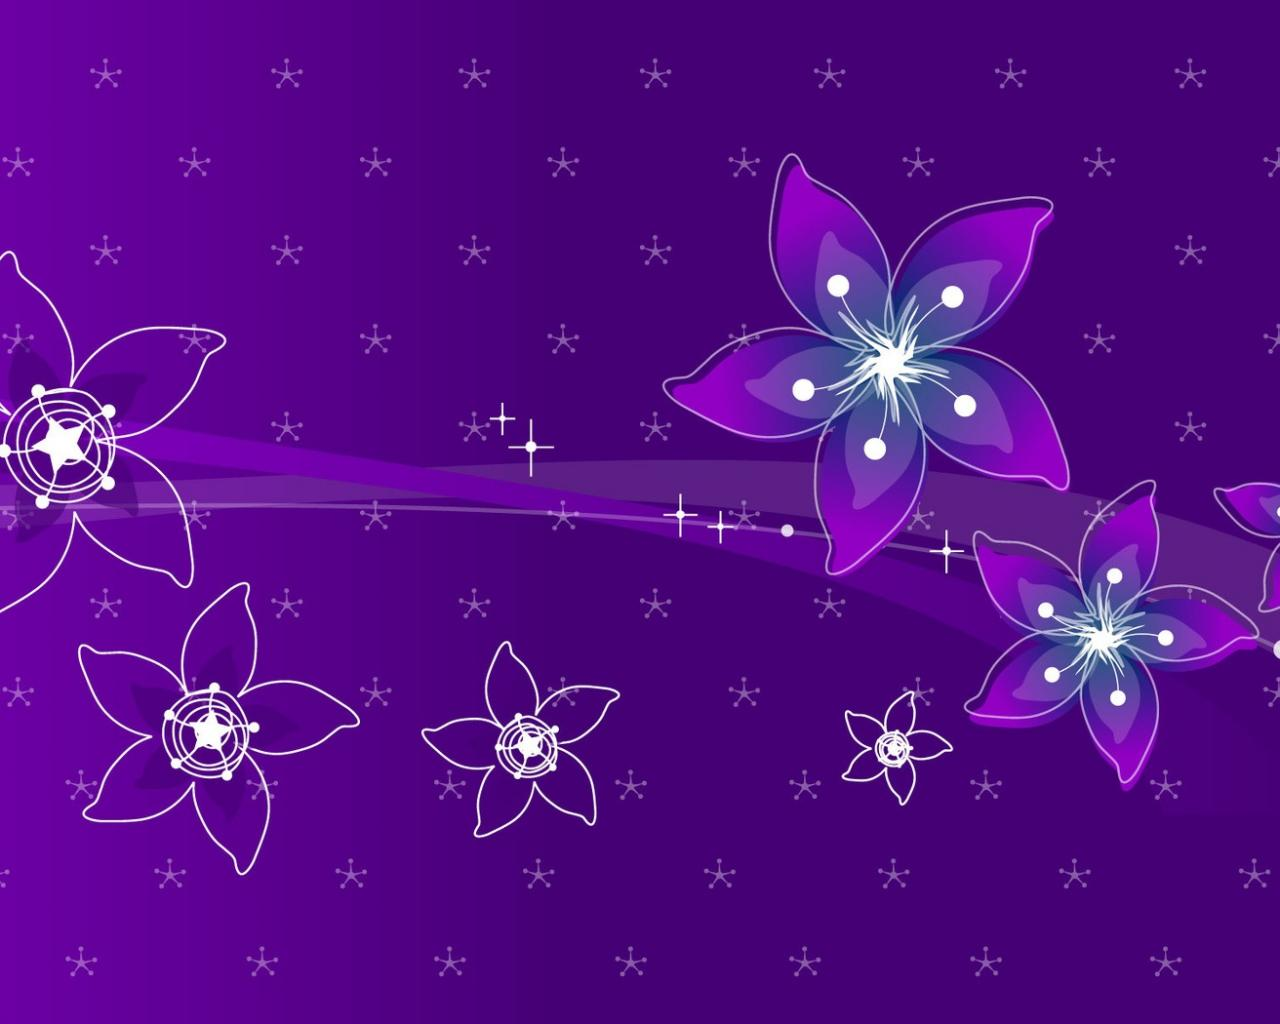 ... Design Purple Background wallpapers hd 1280x1024 hd desktop wallpaper